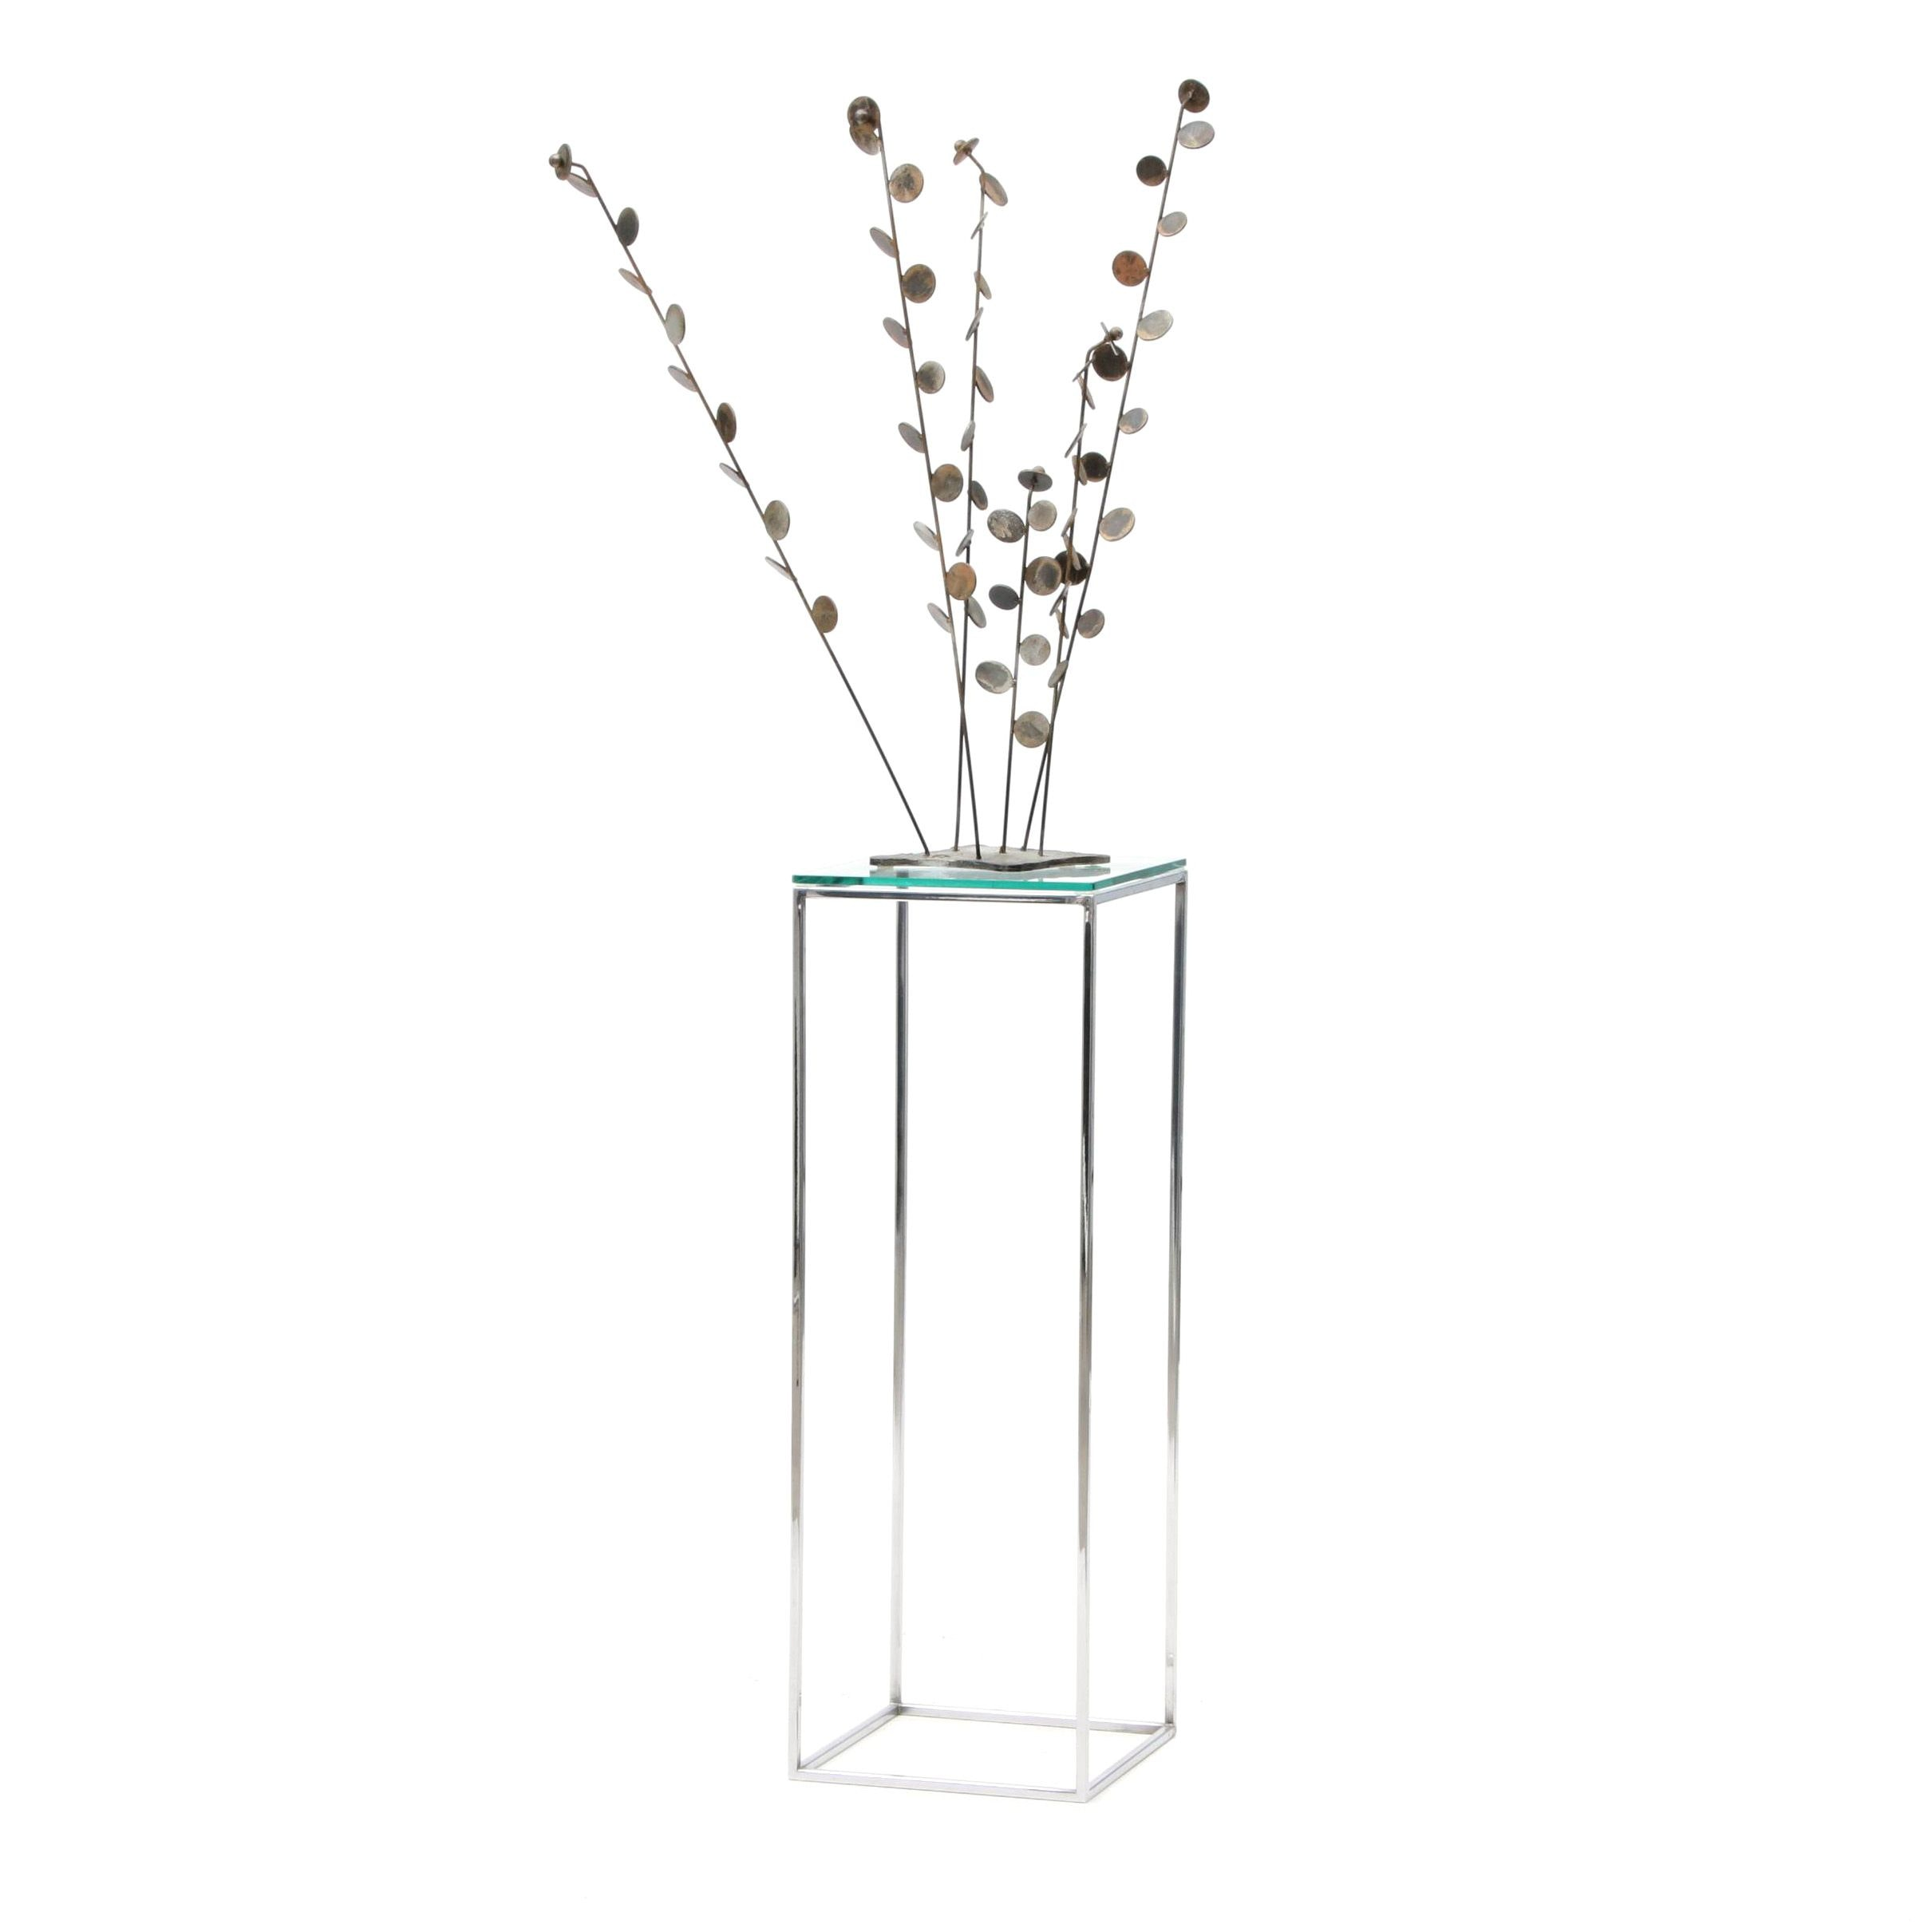 Abstract Metal Willow Sculpture on Stand